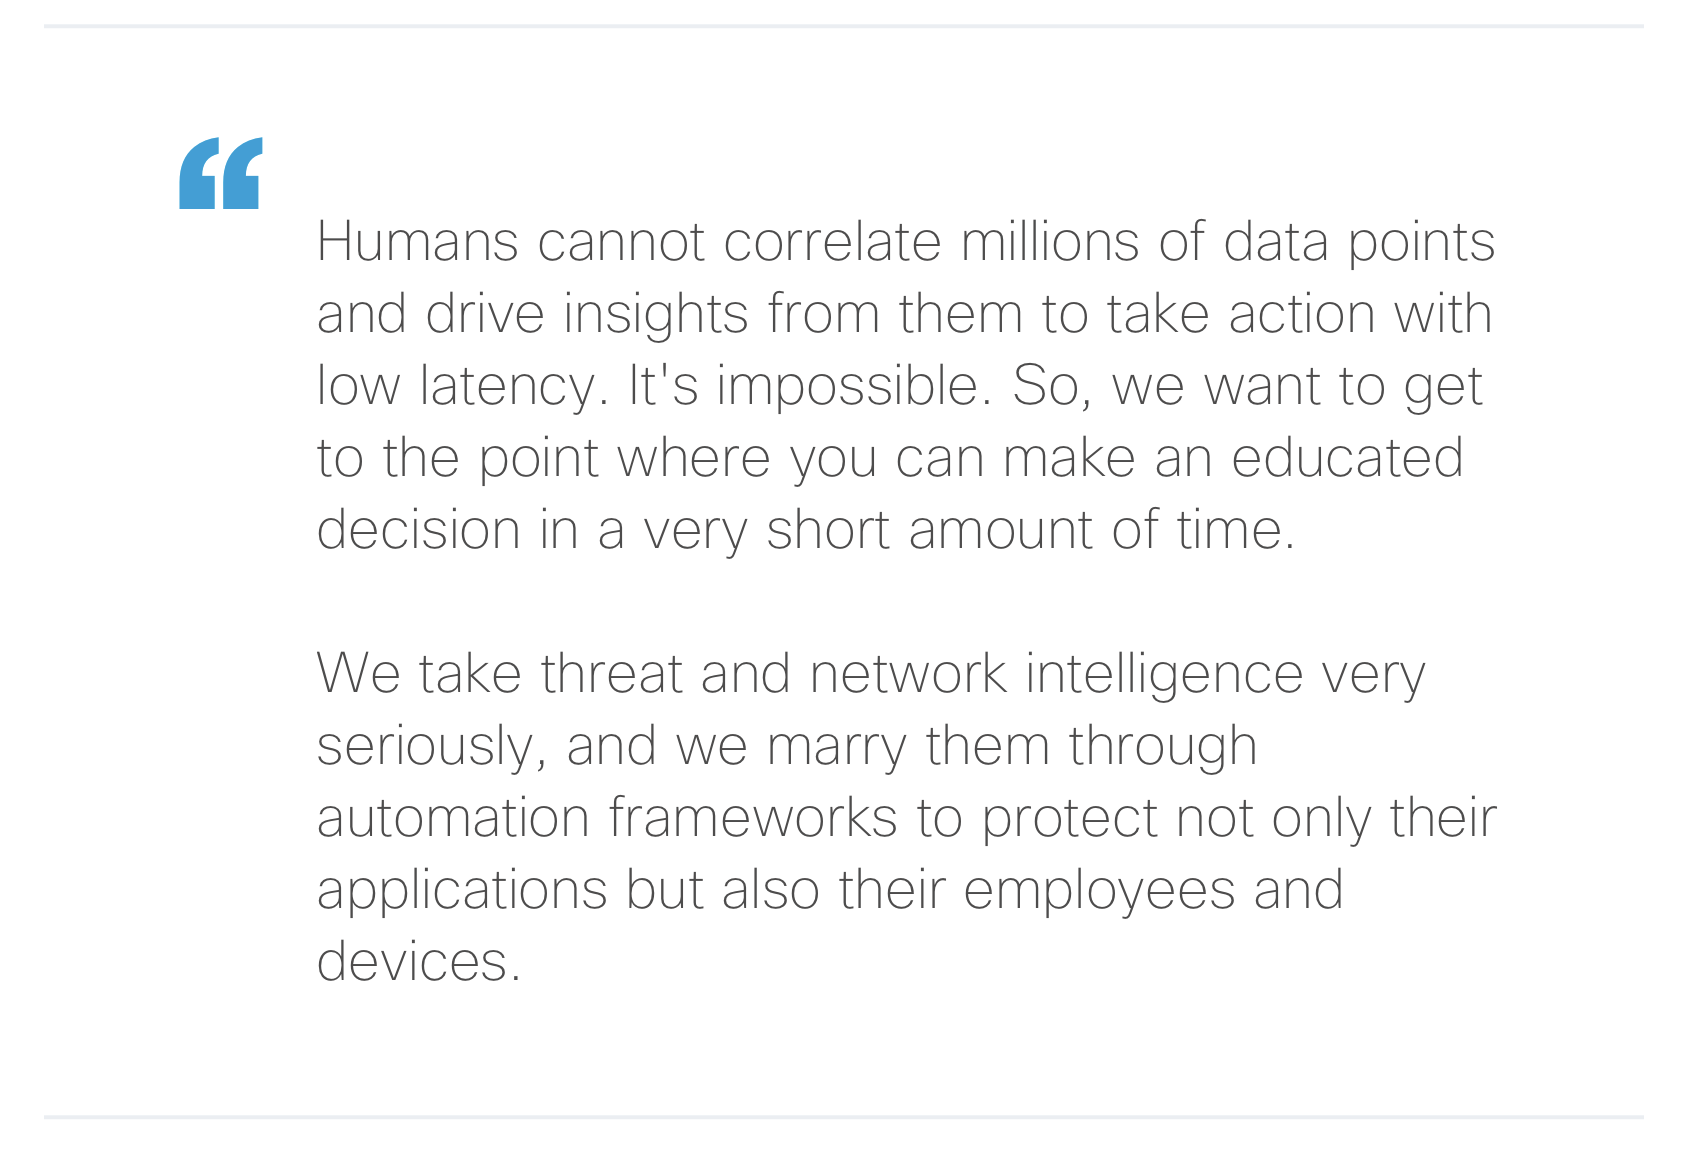 """""""Humans cannot correlate millions of data points and drive insights from them to take action with low latency. It's impossible. So, we want to get to the point where you can make an educated decision in a very short amount of time. We take threat and network intelligence very seriously, and we marry them through automation frameworks to protect not only their applications but also their employees and devices."""""""